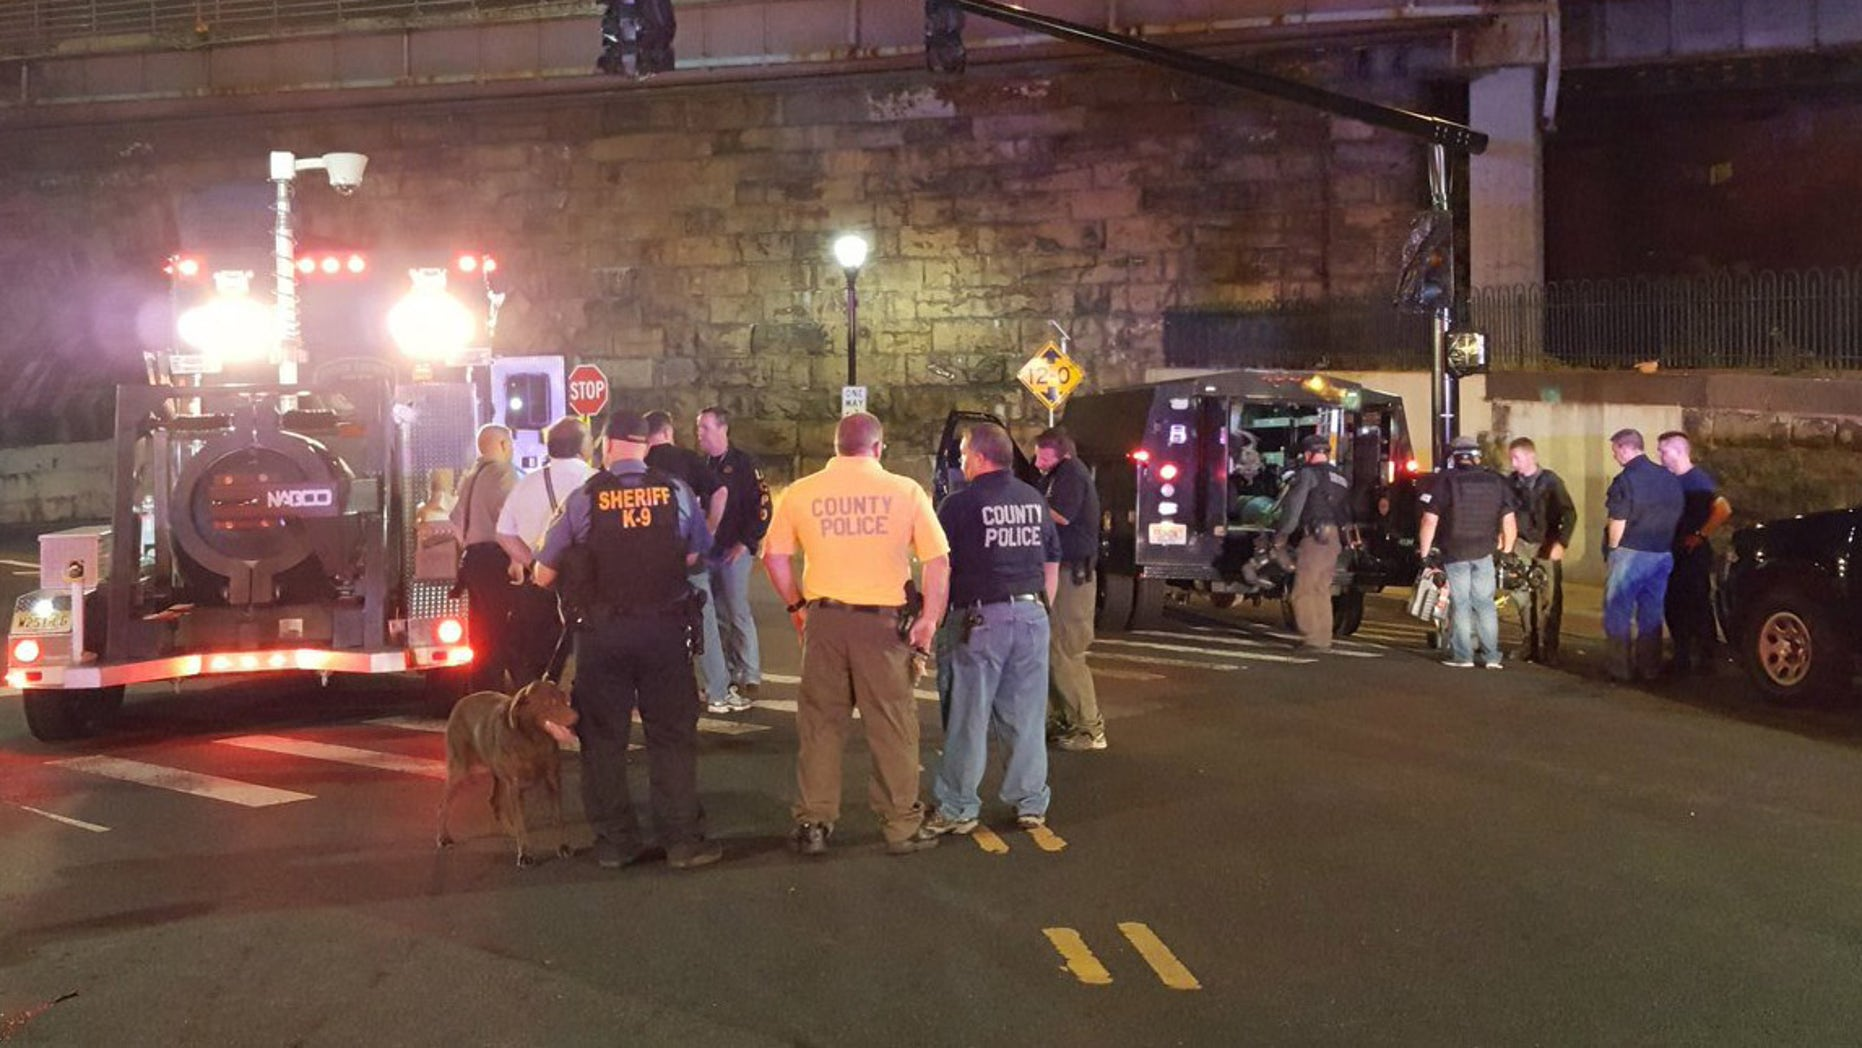 FBI Bomb Squad is on scene and continuing the investigation at the train station in Midtown Elizabeth.